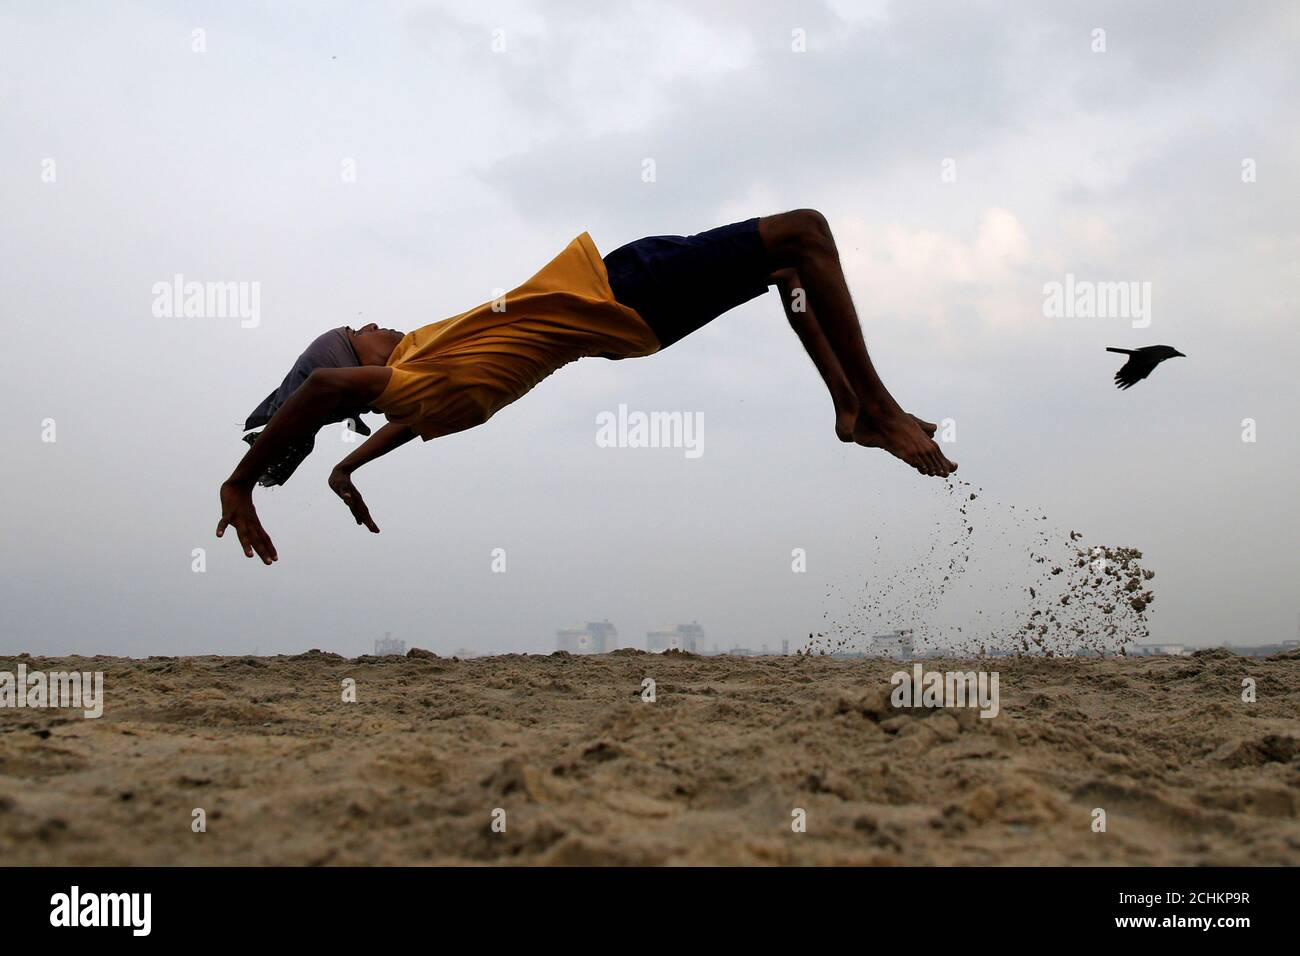 A boy practices somersaulting as he exercises at a beach in Kochi, India, March 11, 2019. REUTERS/Sivaram V     TPX IMAGES OF THE DAY Stock Photo